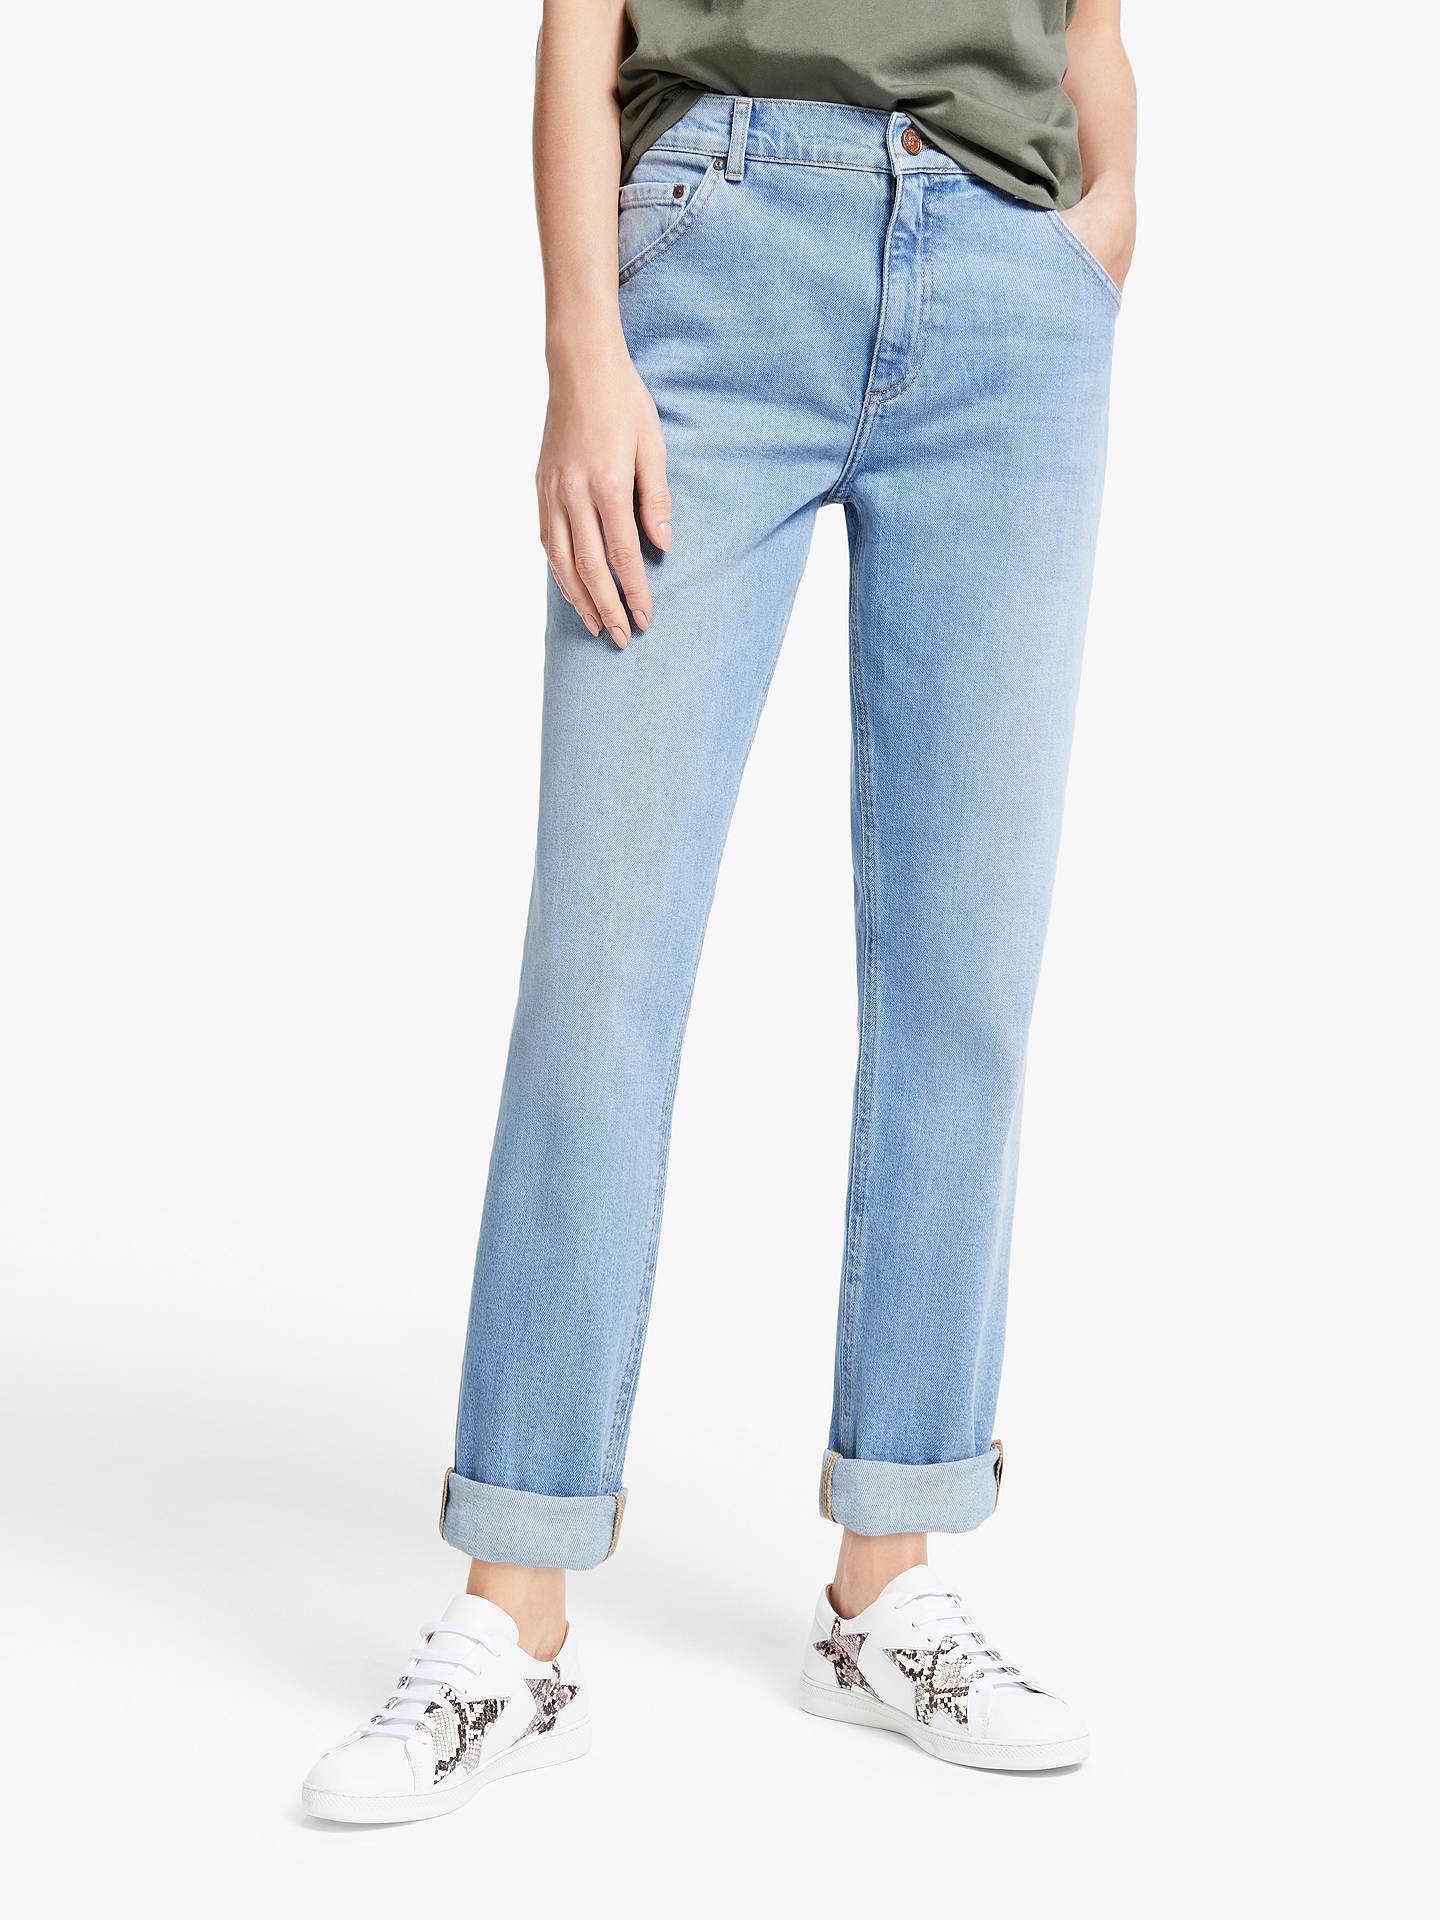 Buy AND/OR Venice Beach Boyfriend Jeans, Summer Sky, 24R Online at johnlewis.com